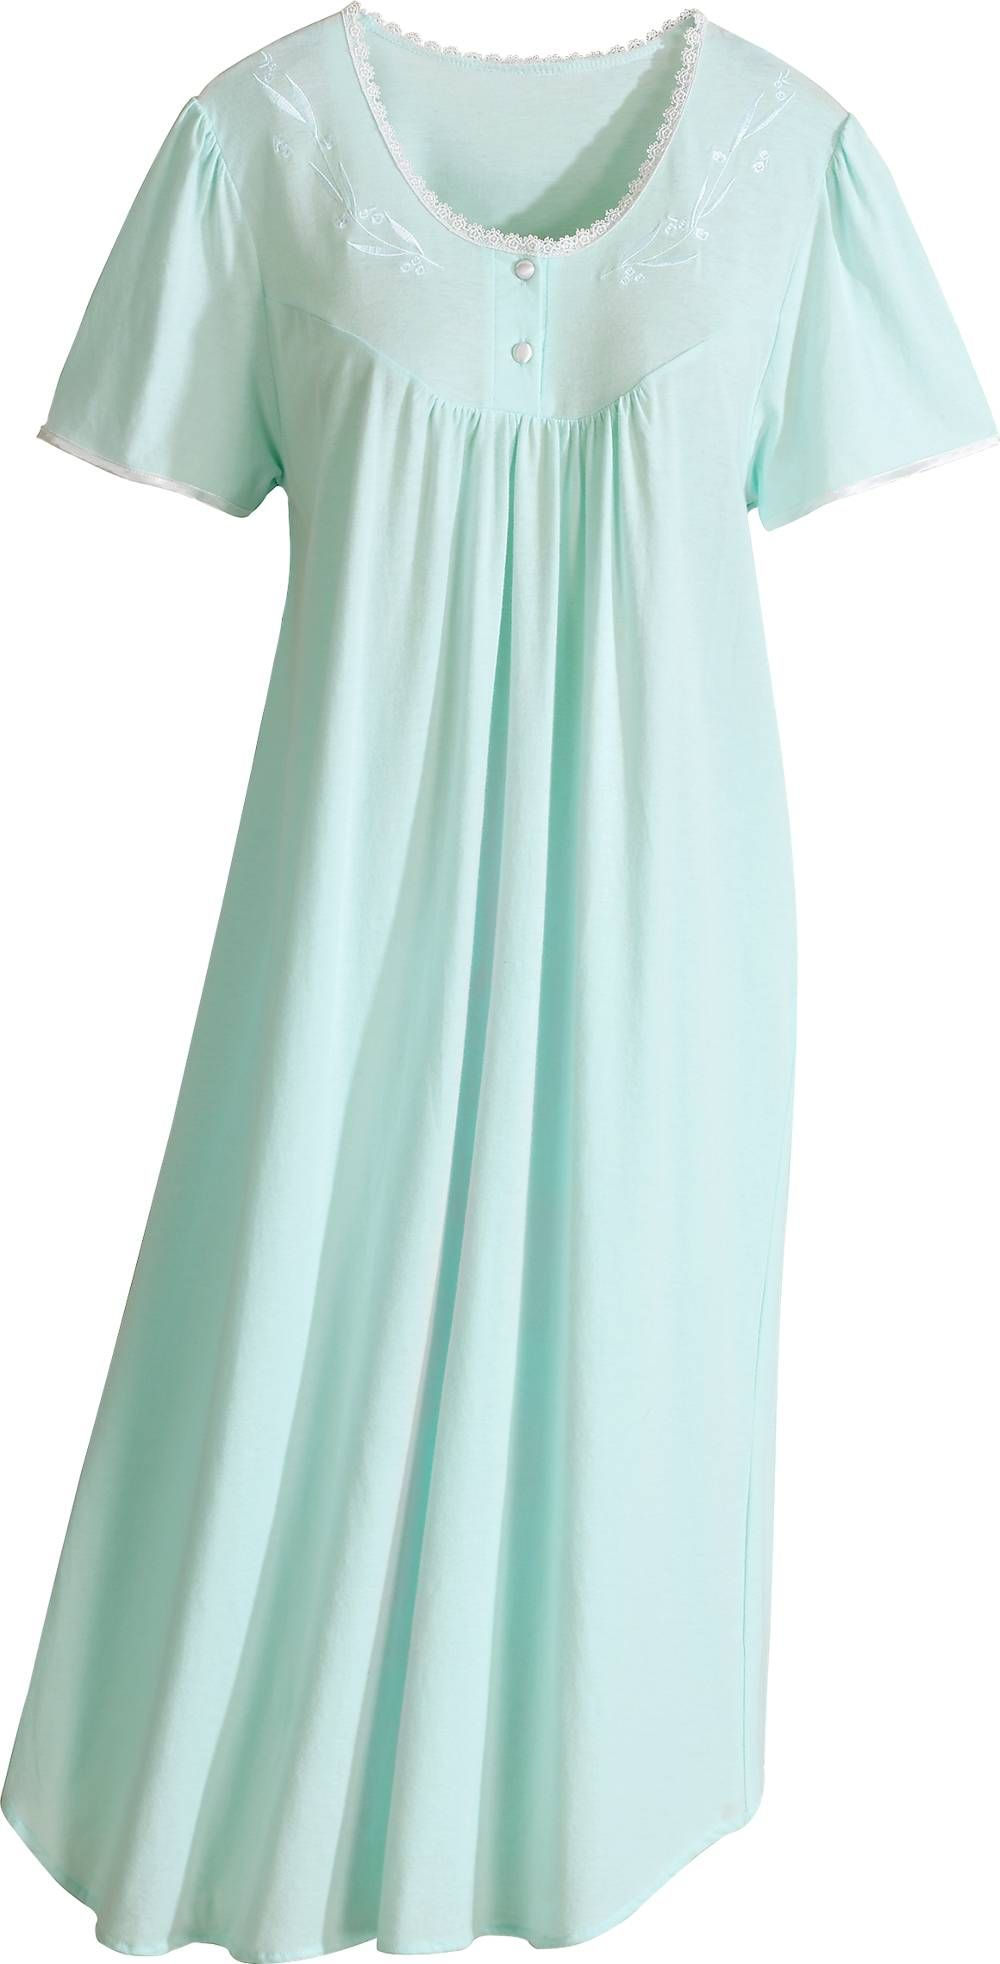 de7c67134 Combed cotton knit nightgown is a sumptuously soft knit. Incredibly  comfortable cotton nightgown is trimmed with lace and satin.